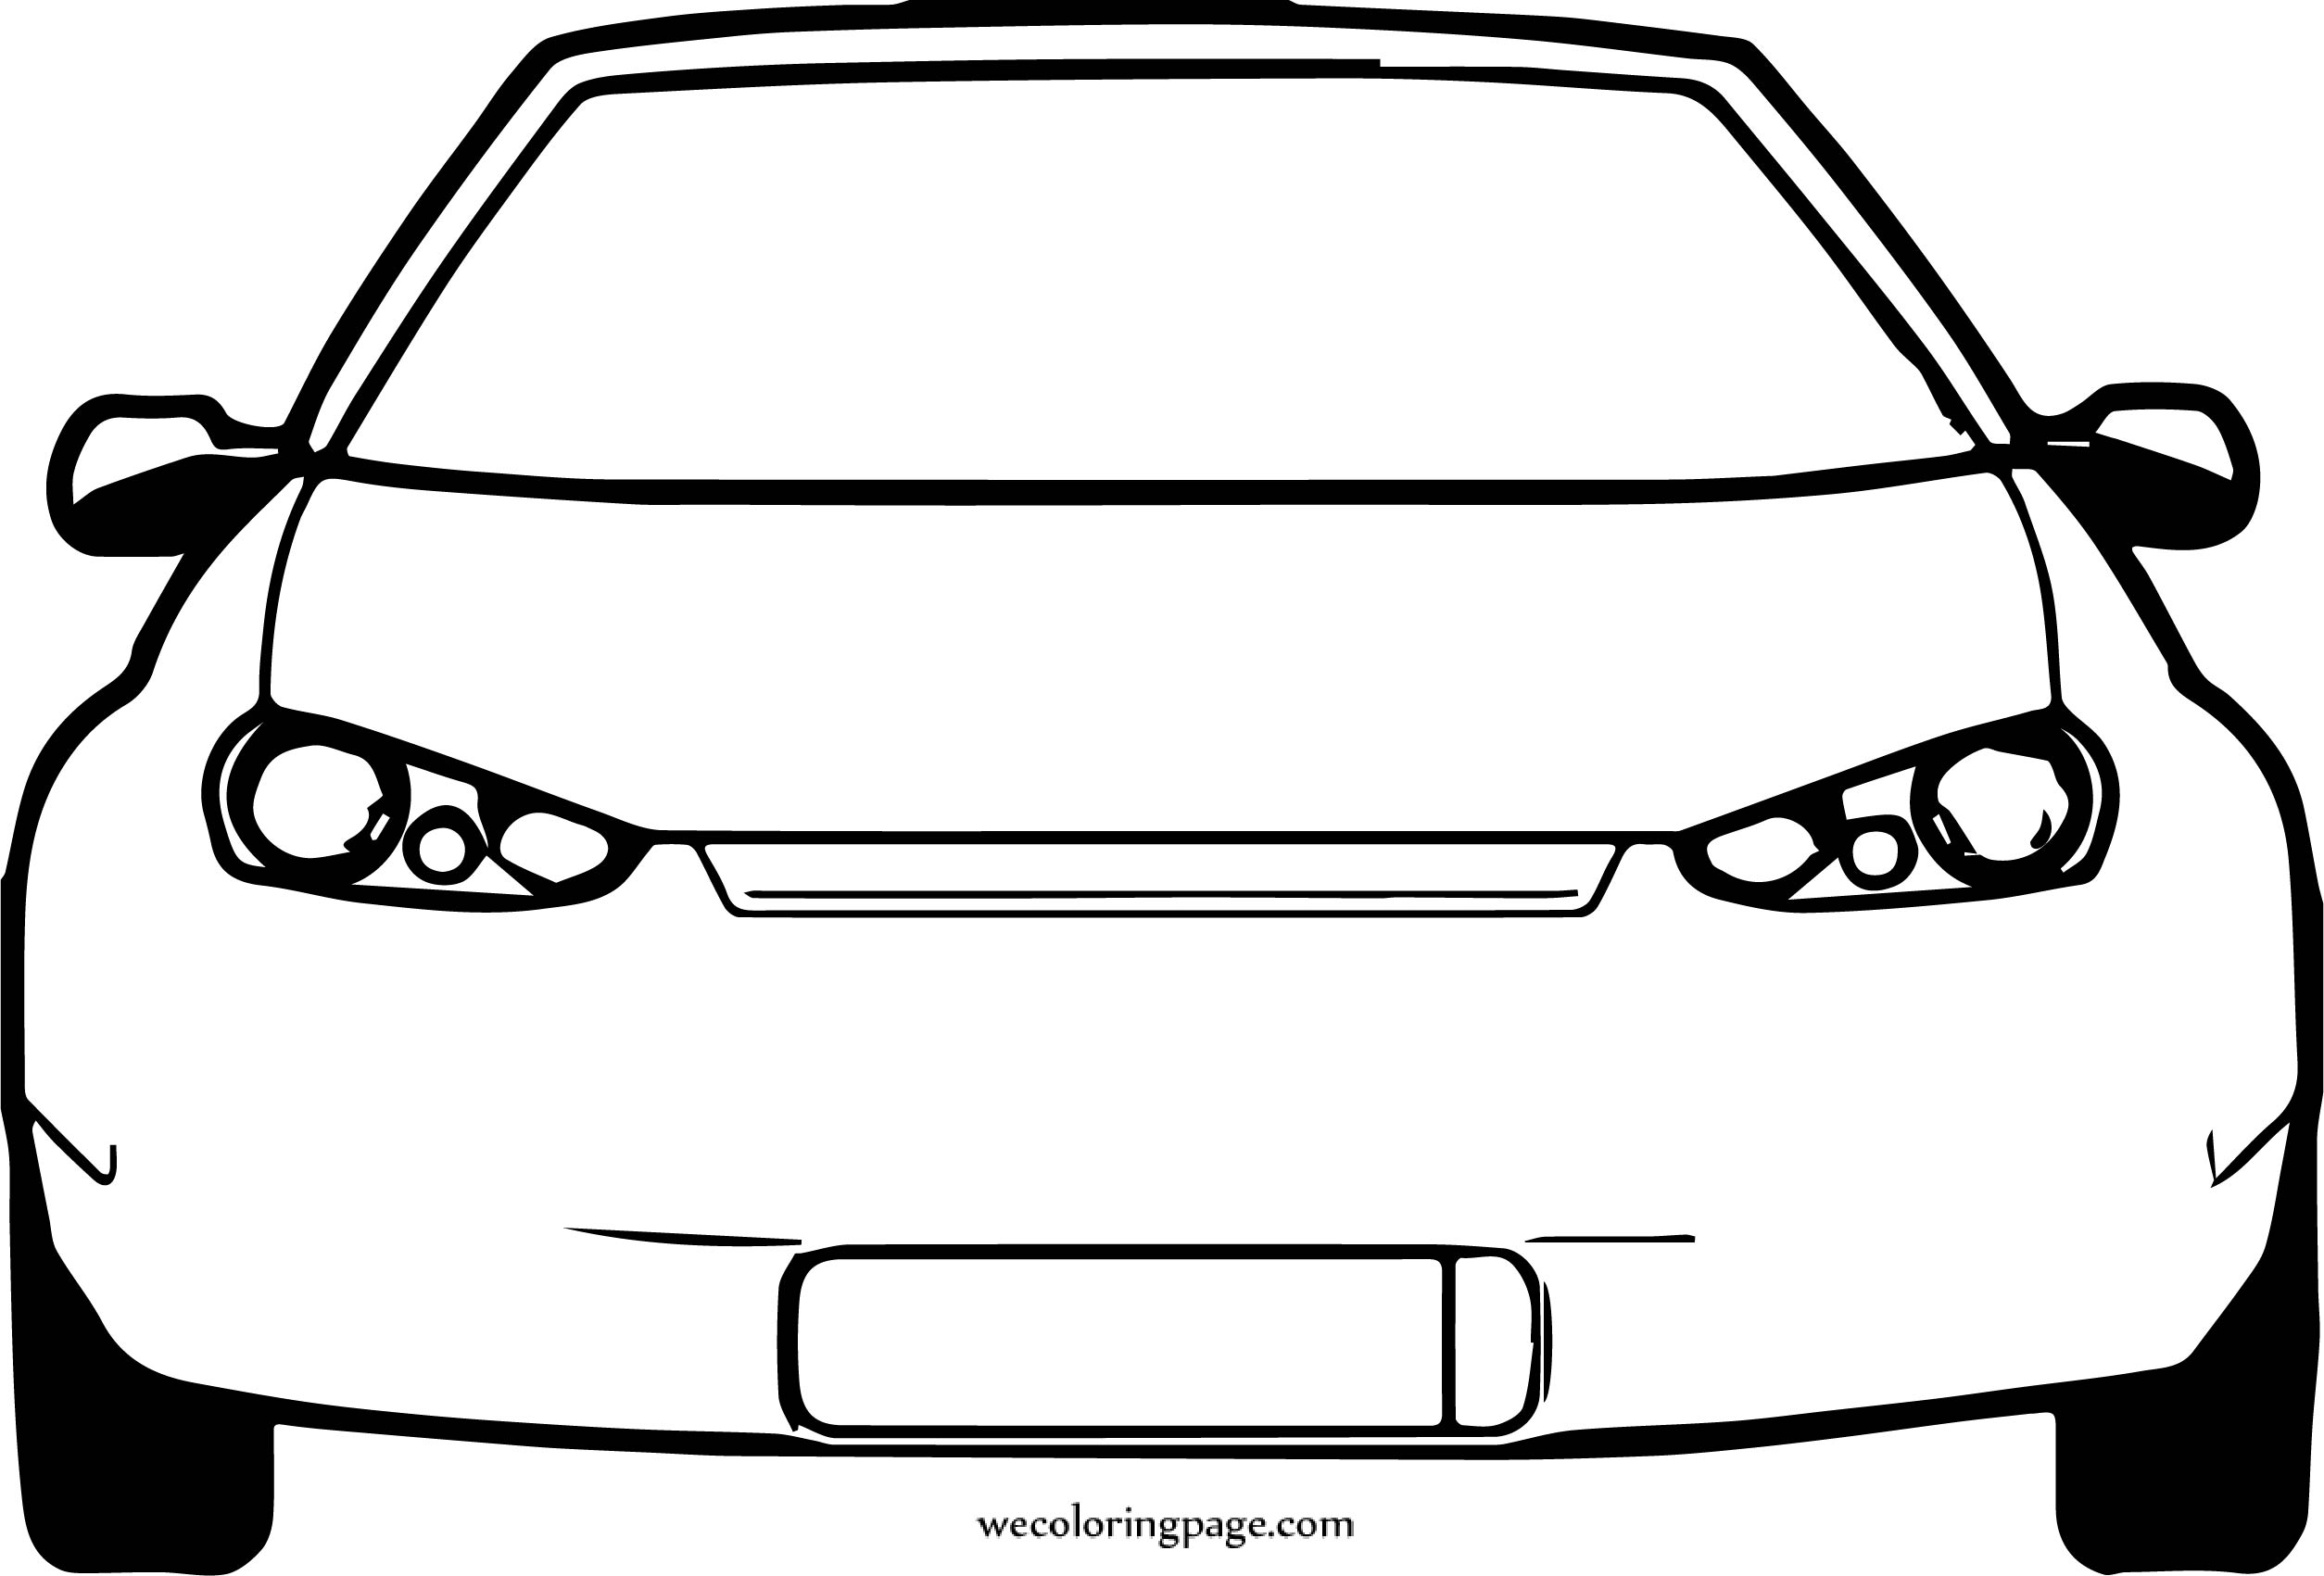 Were Front View Car Coloring Page